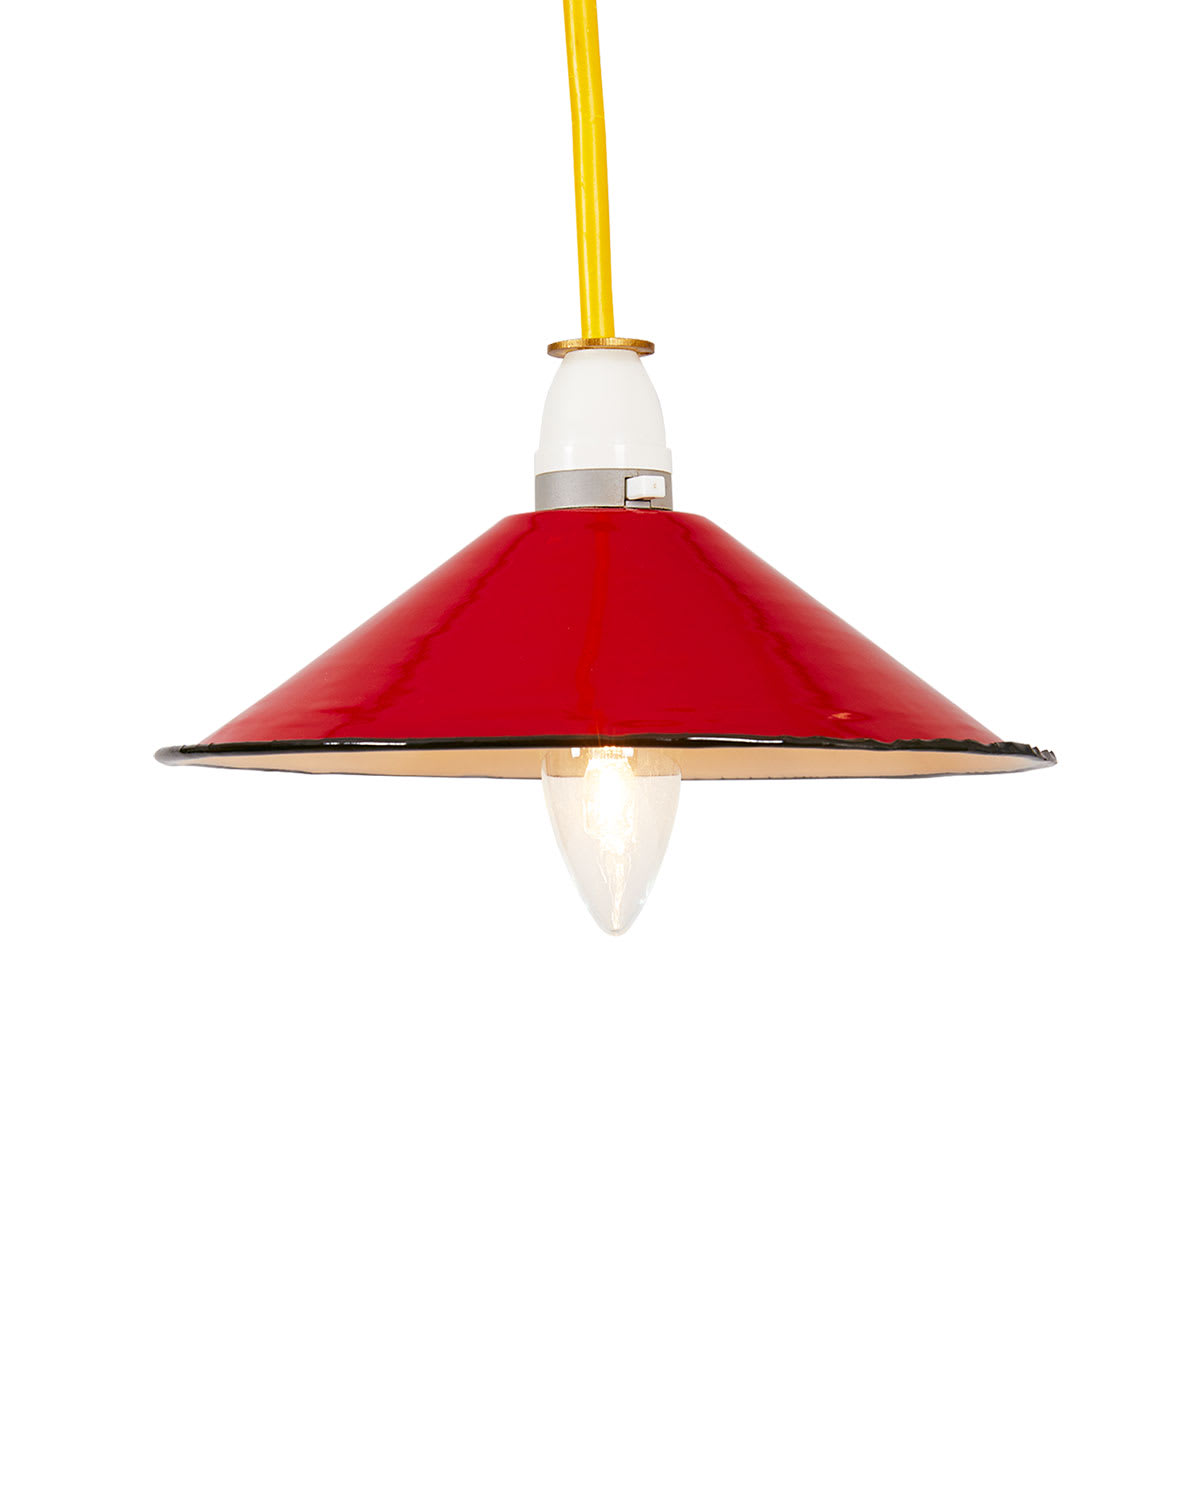 Ian Snow Small Red Enamel Lampshade